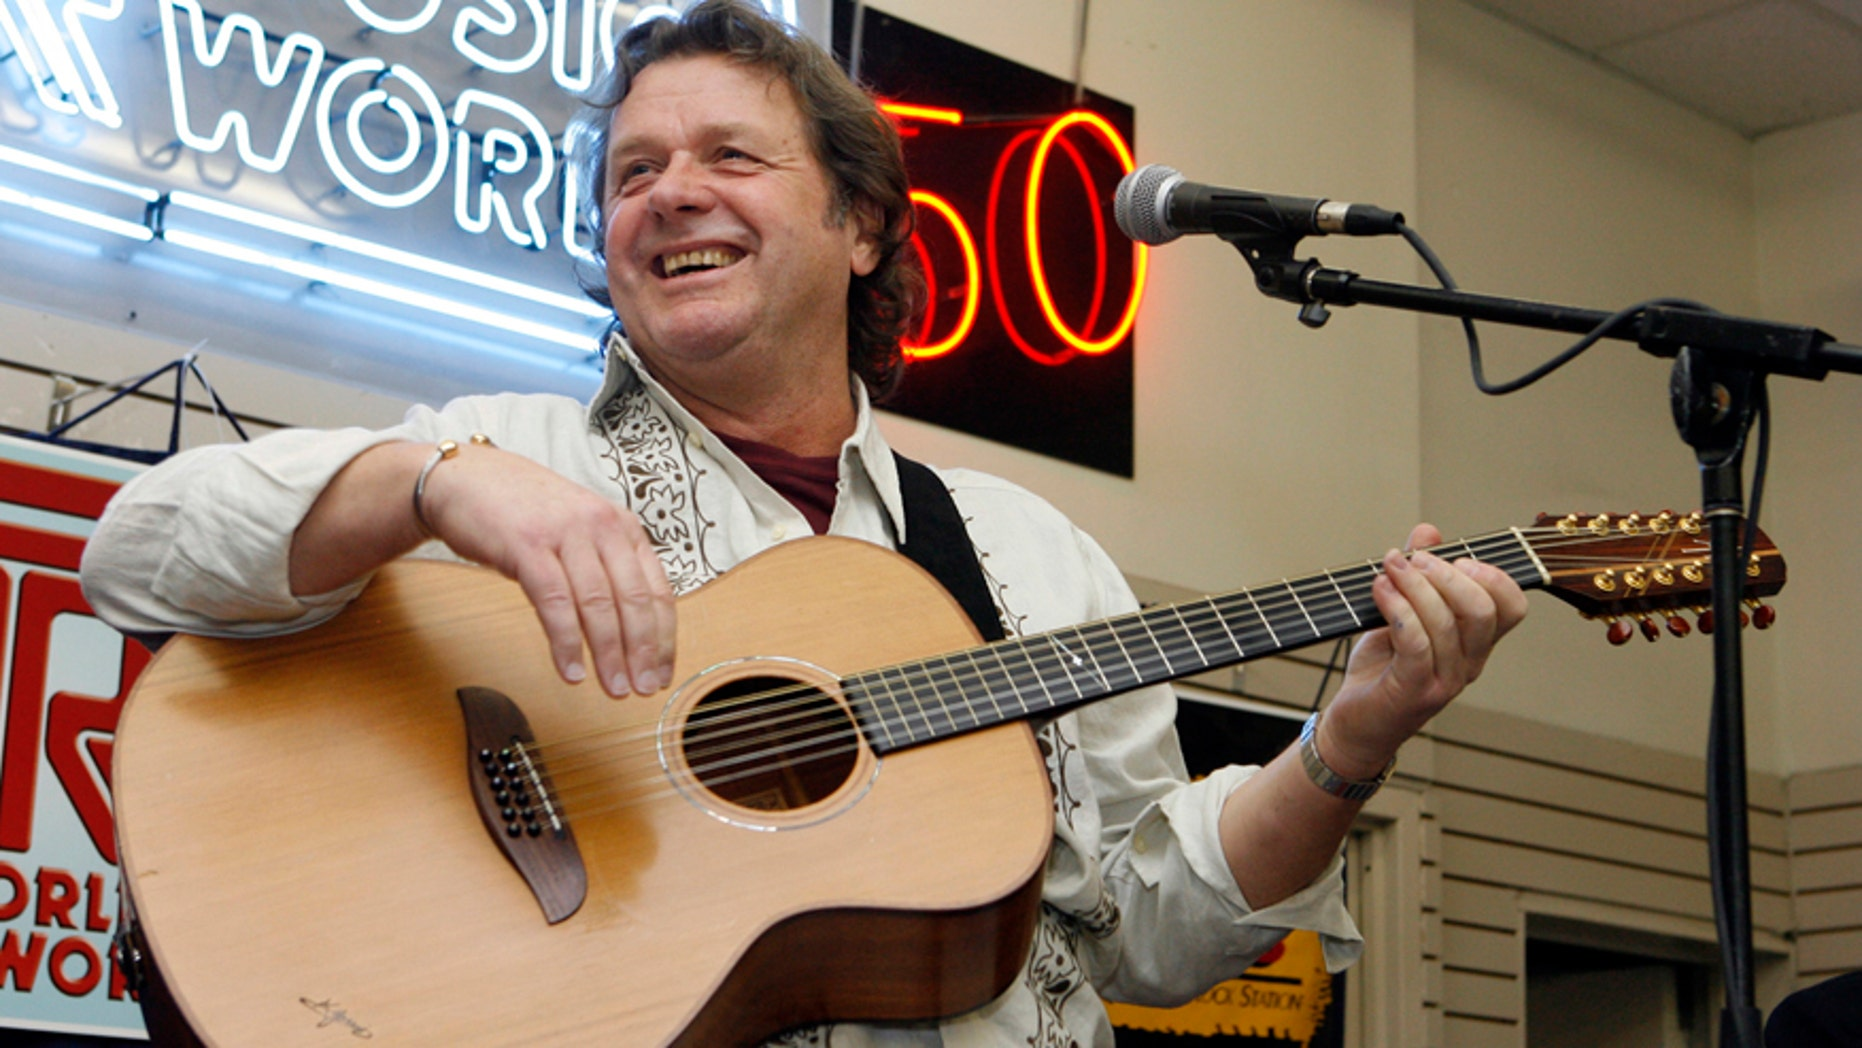 In this Thursday, April 17, 2008 file photo, John Wetton performs with the band Asia at a music store in New York.